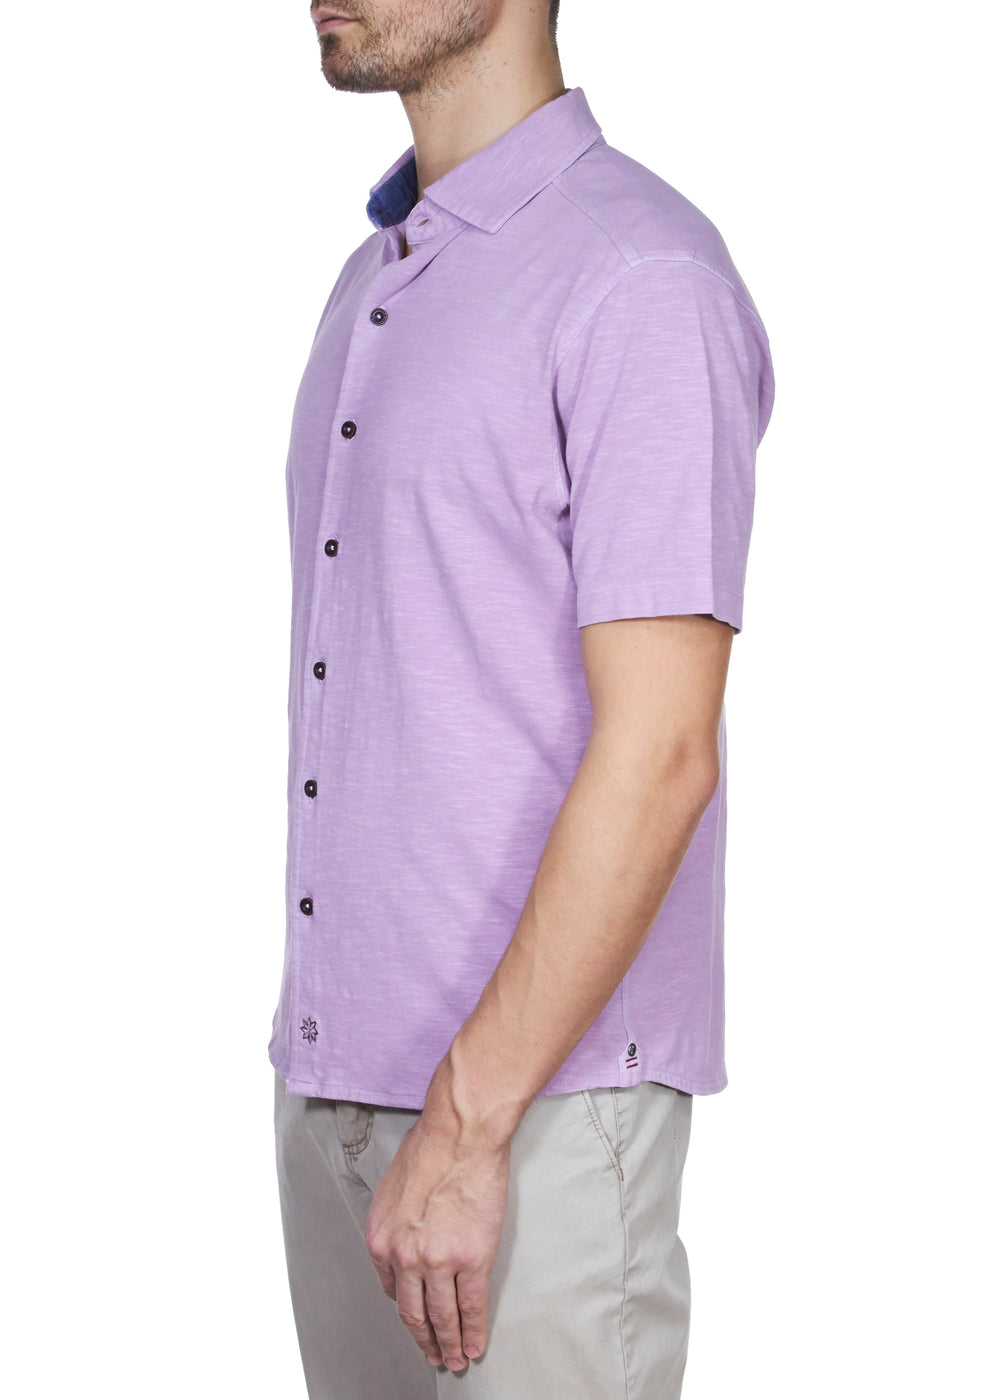 Thaddeus McADAMS Short Sleeve Solid Button-Up